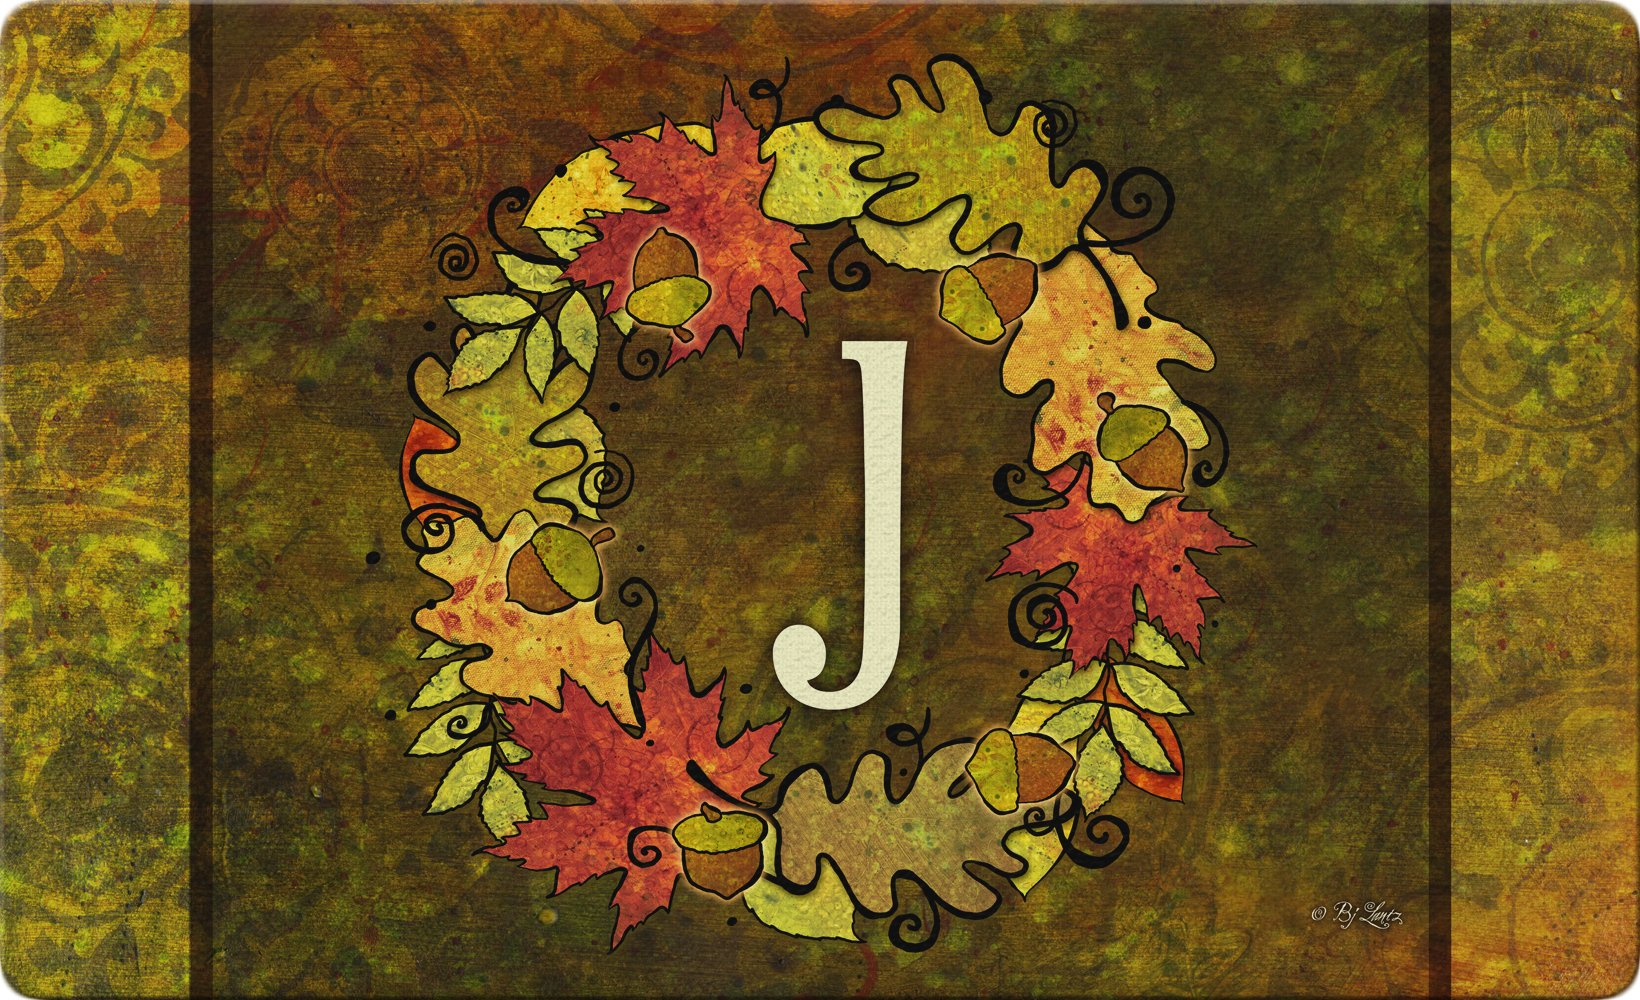 Toland Home Garden Fall Wreath Monogram J 18 x 30 Inch Decorative Autumn Floor Mat Colorful Leaves Doormat